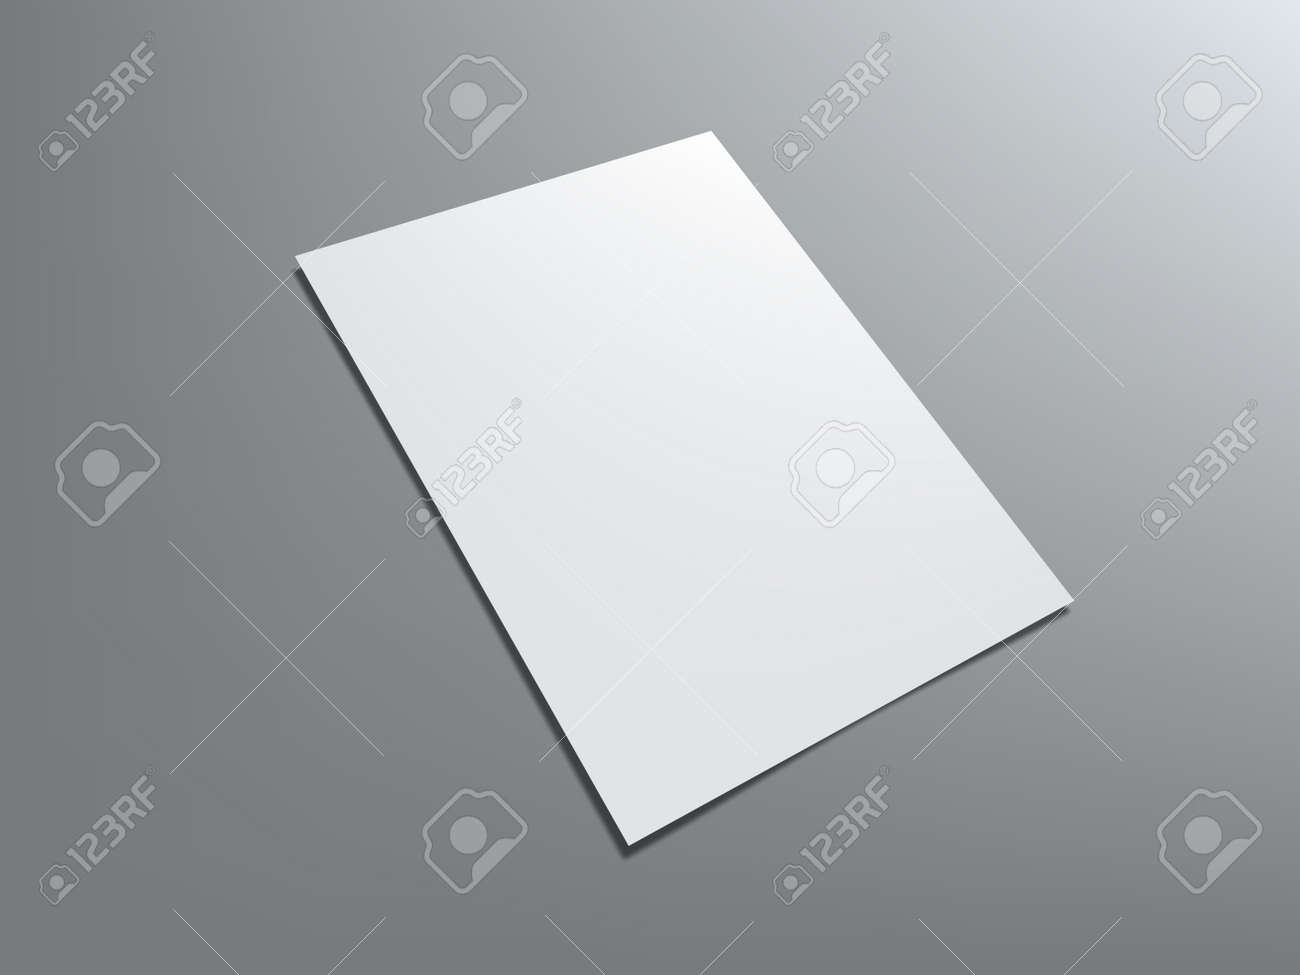 Blank Portrait A4 White Paper Isolated On Gray - 169410678